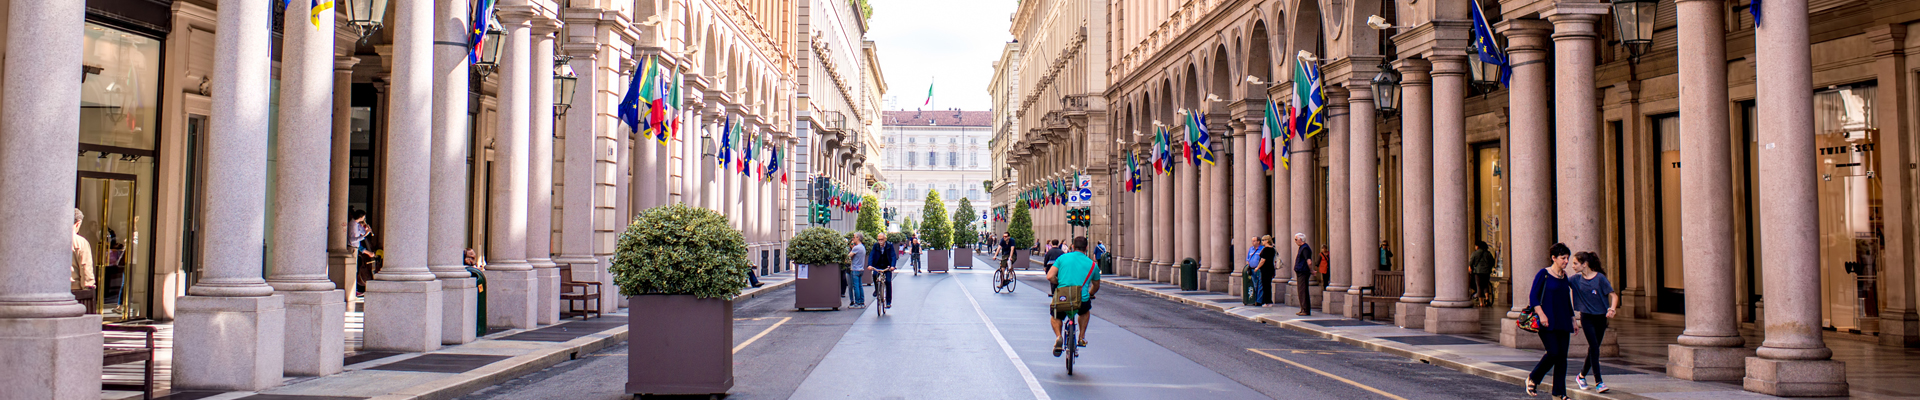 Via Garibaldi in Turin, Italy